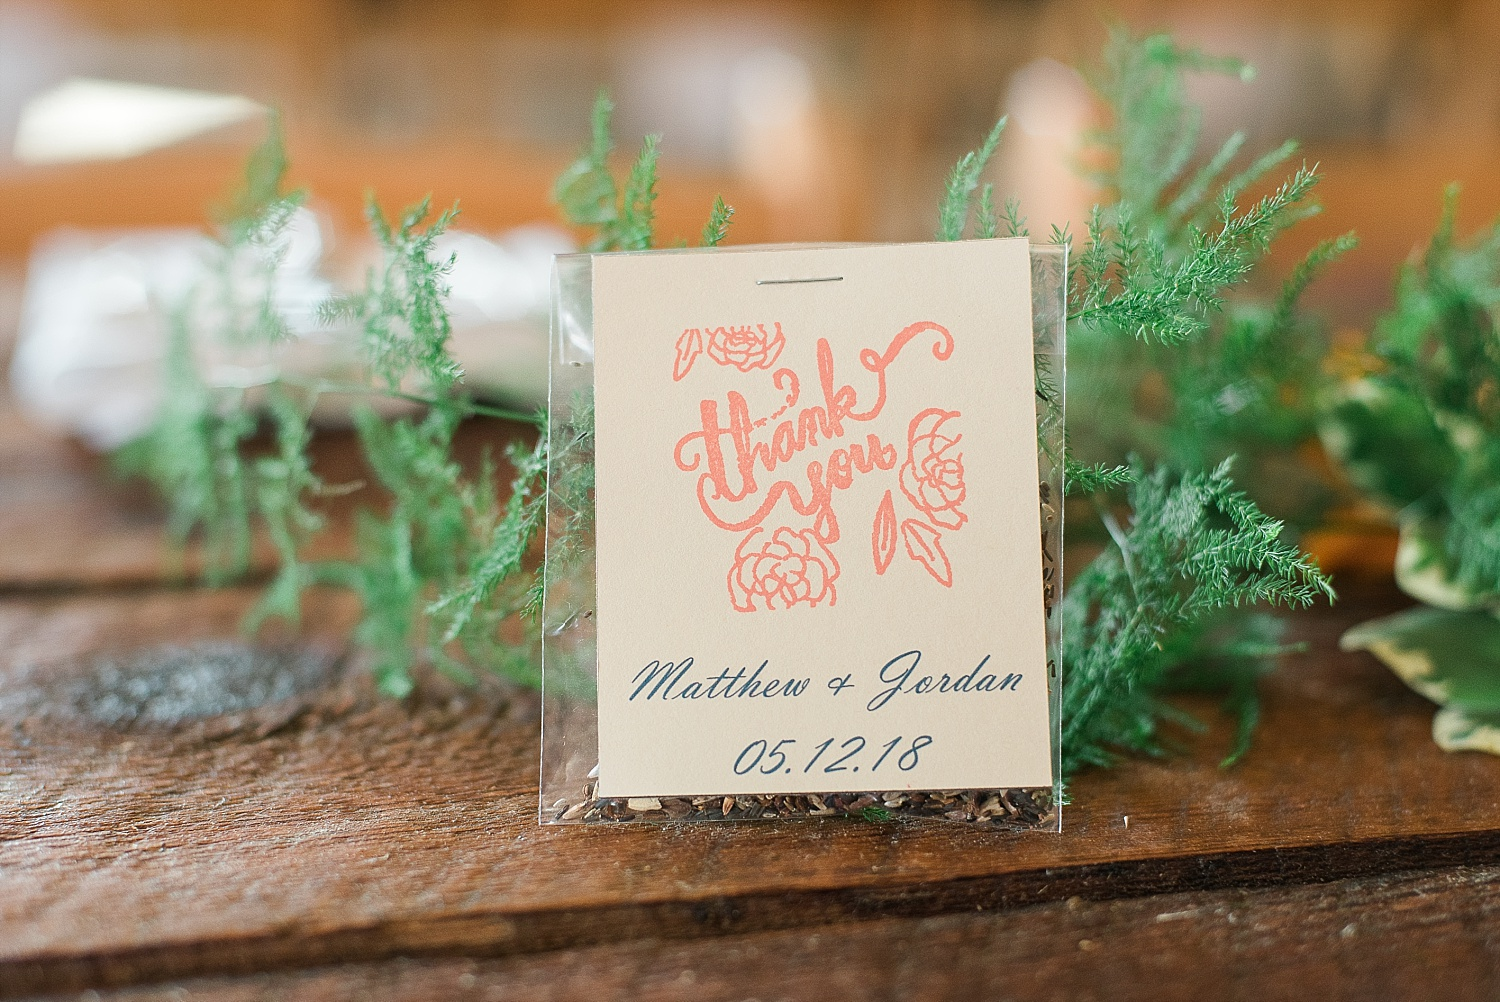 Jordan and Matthew gave out wildflower seeds as favors to their guests! So fun!